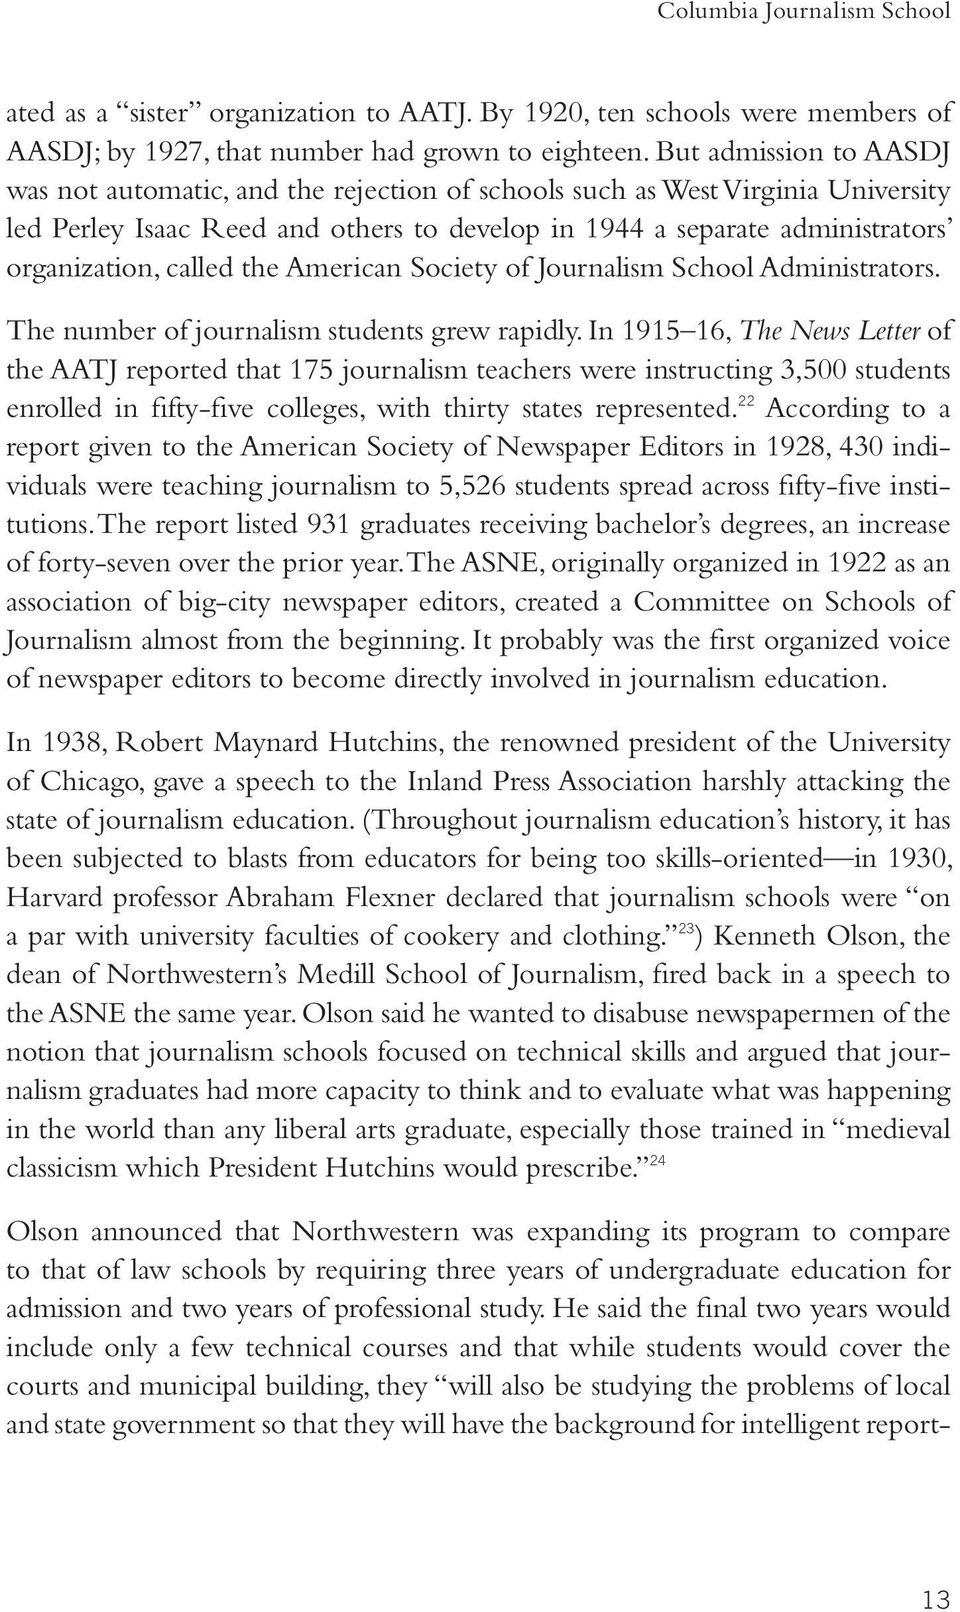 called the American Society of Journalism School Administrators. The number of journalism students grew rapidly.